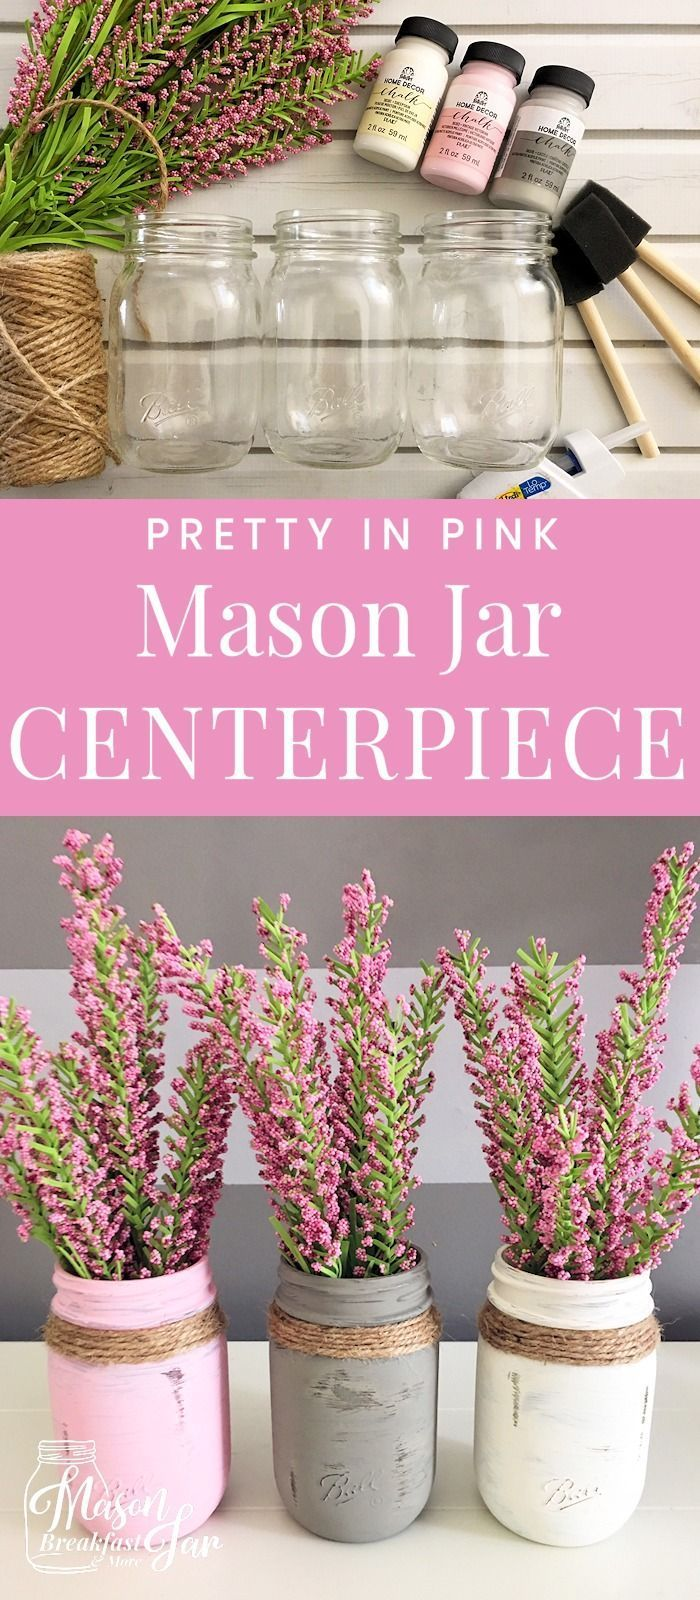 Whether you are looking for Mason jar centerpieces for weddings or for your home...